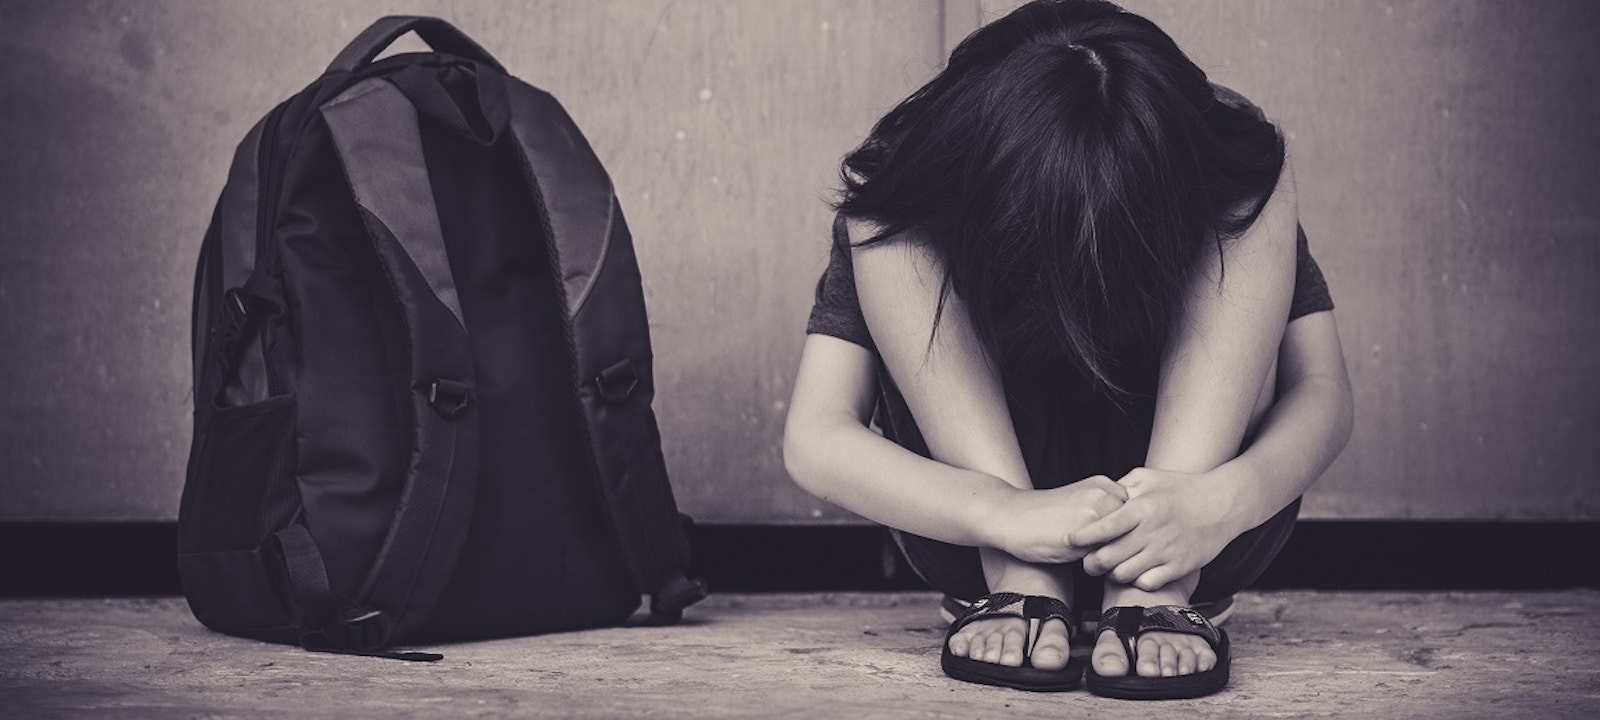 Child bullied and abused at school